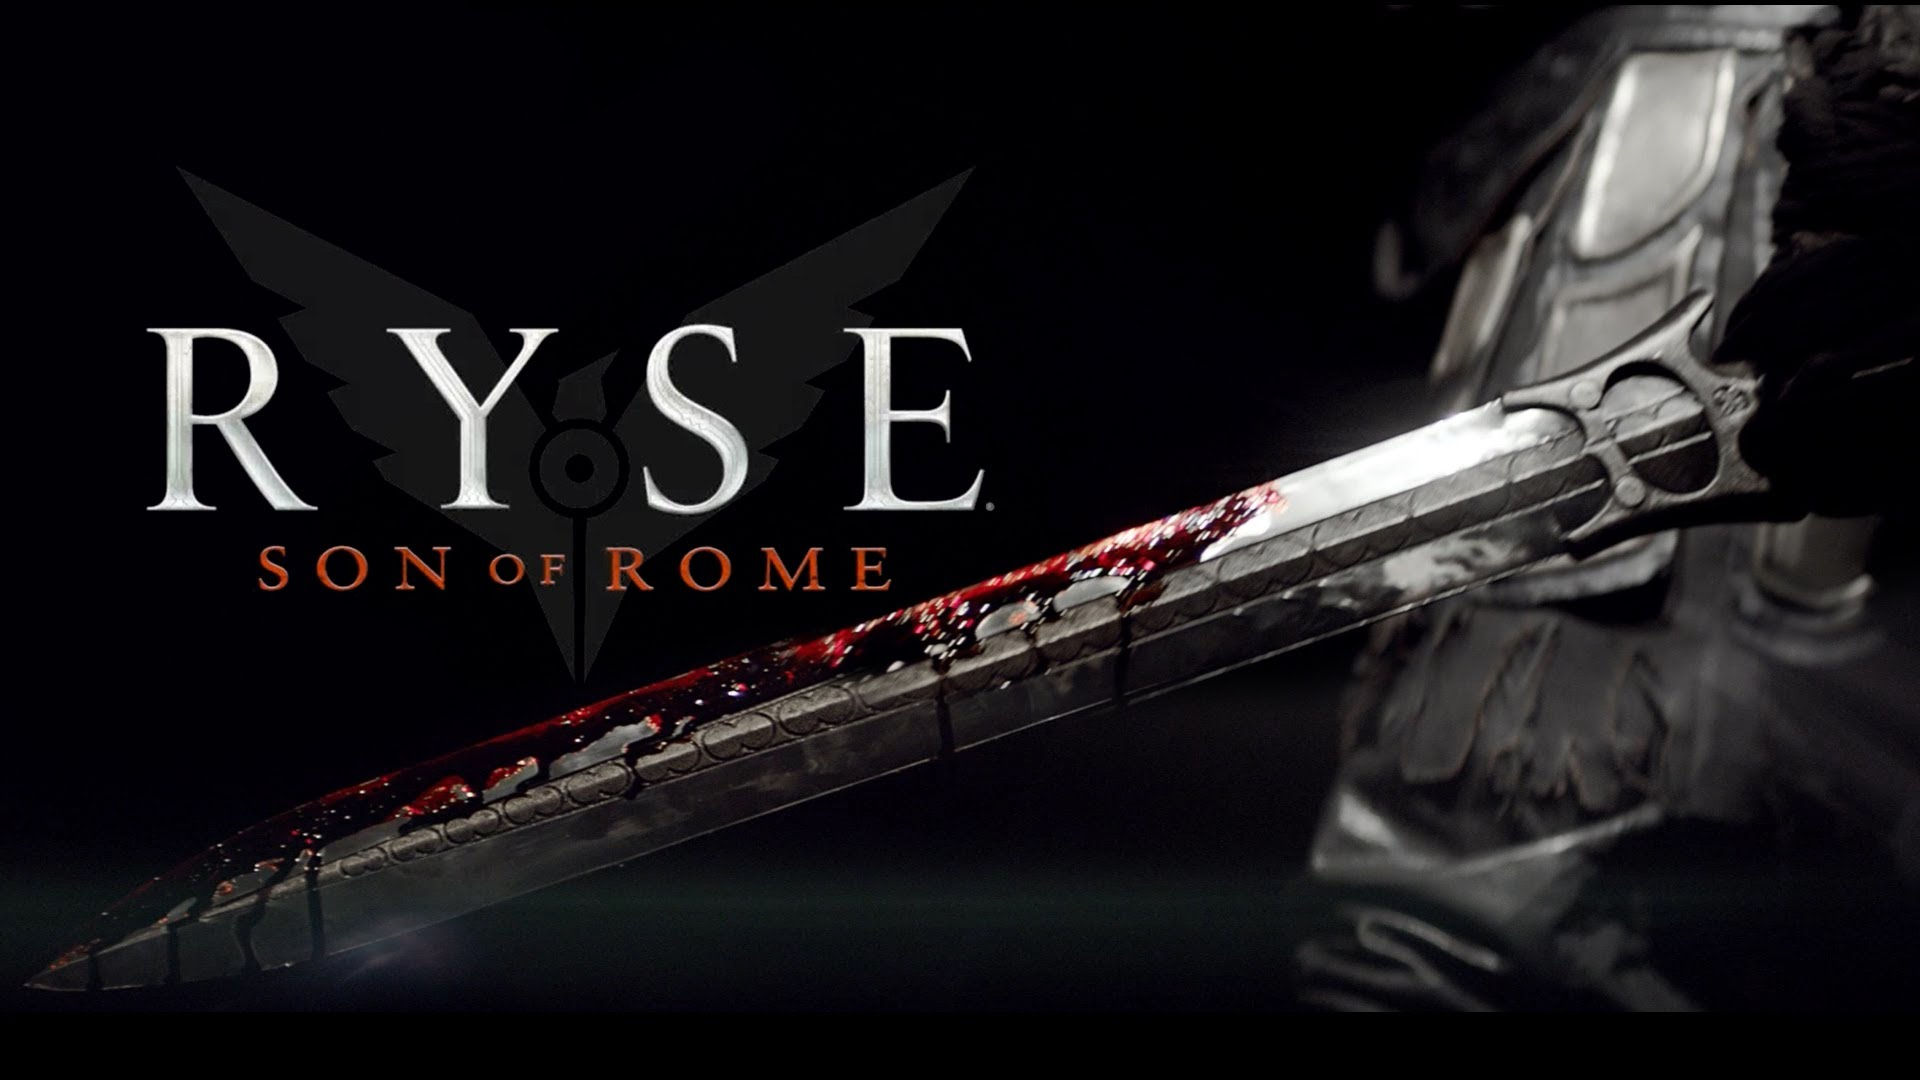 Video For Ryse: Son of Rome – The Fall, Episode Two Now Available